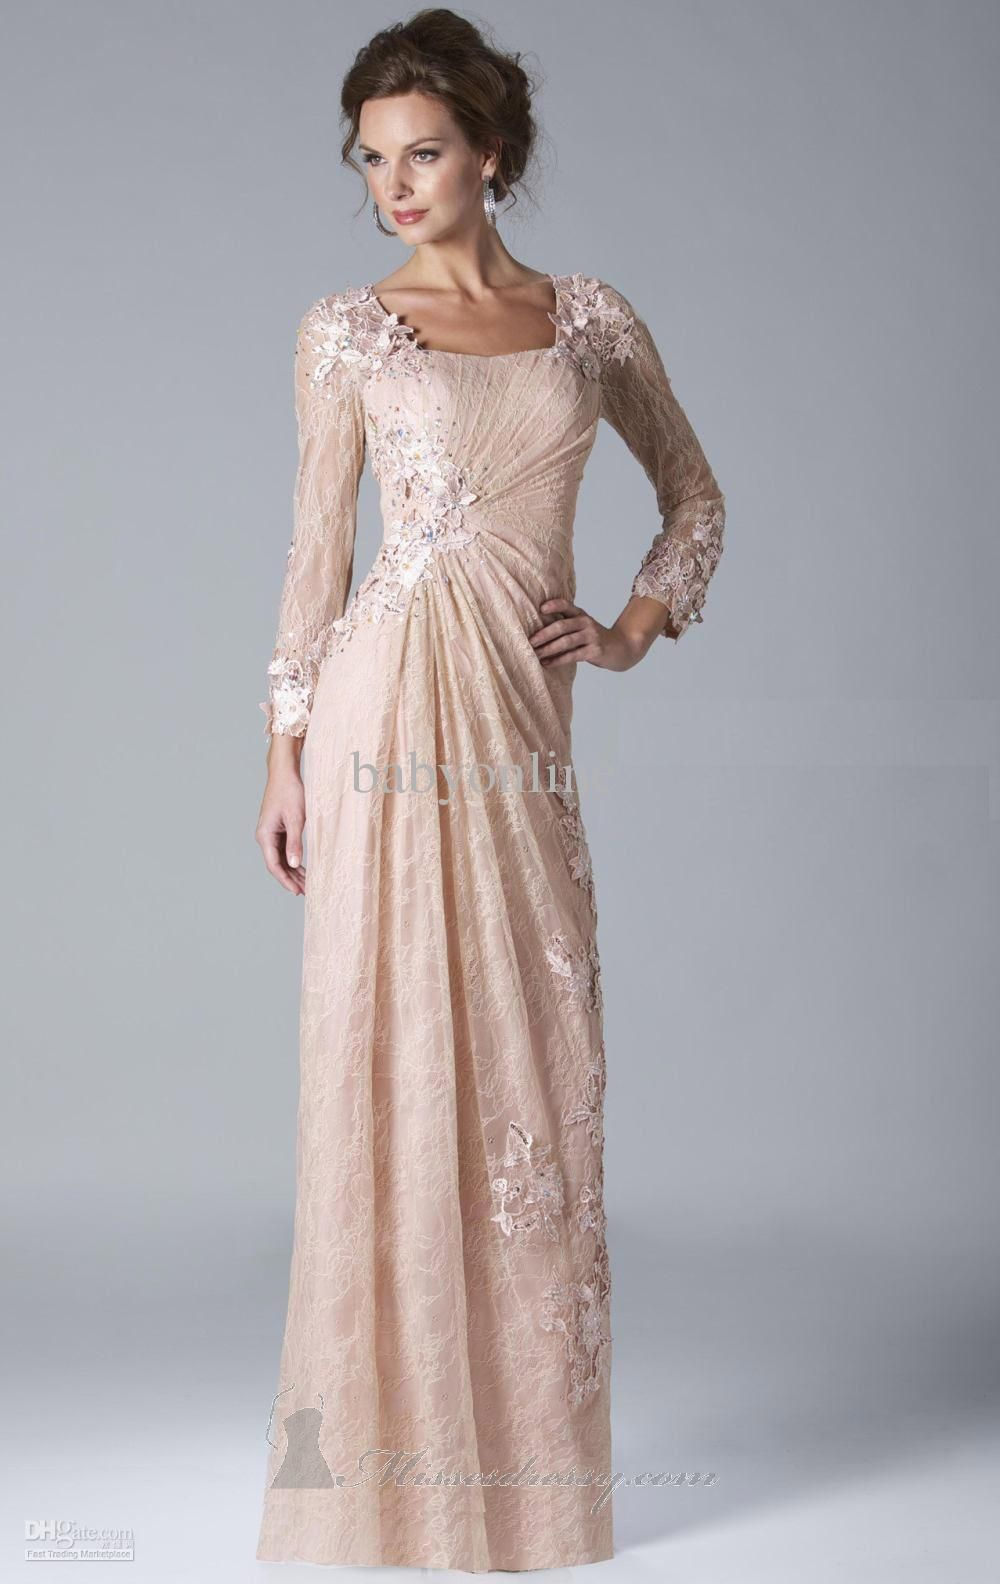 eec0dcc646e Sexy Lace Evening Dresses Long Sleeves Beaded Mother Of The Bride Dresses  w034